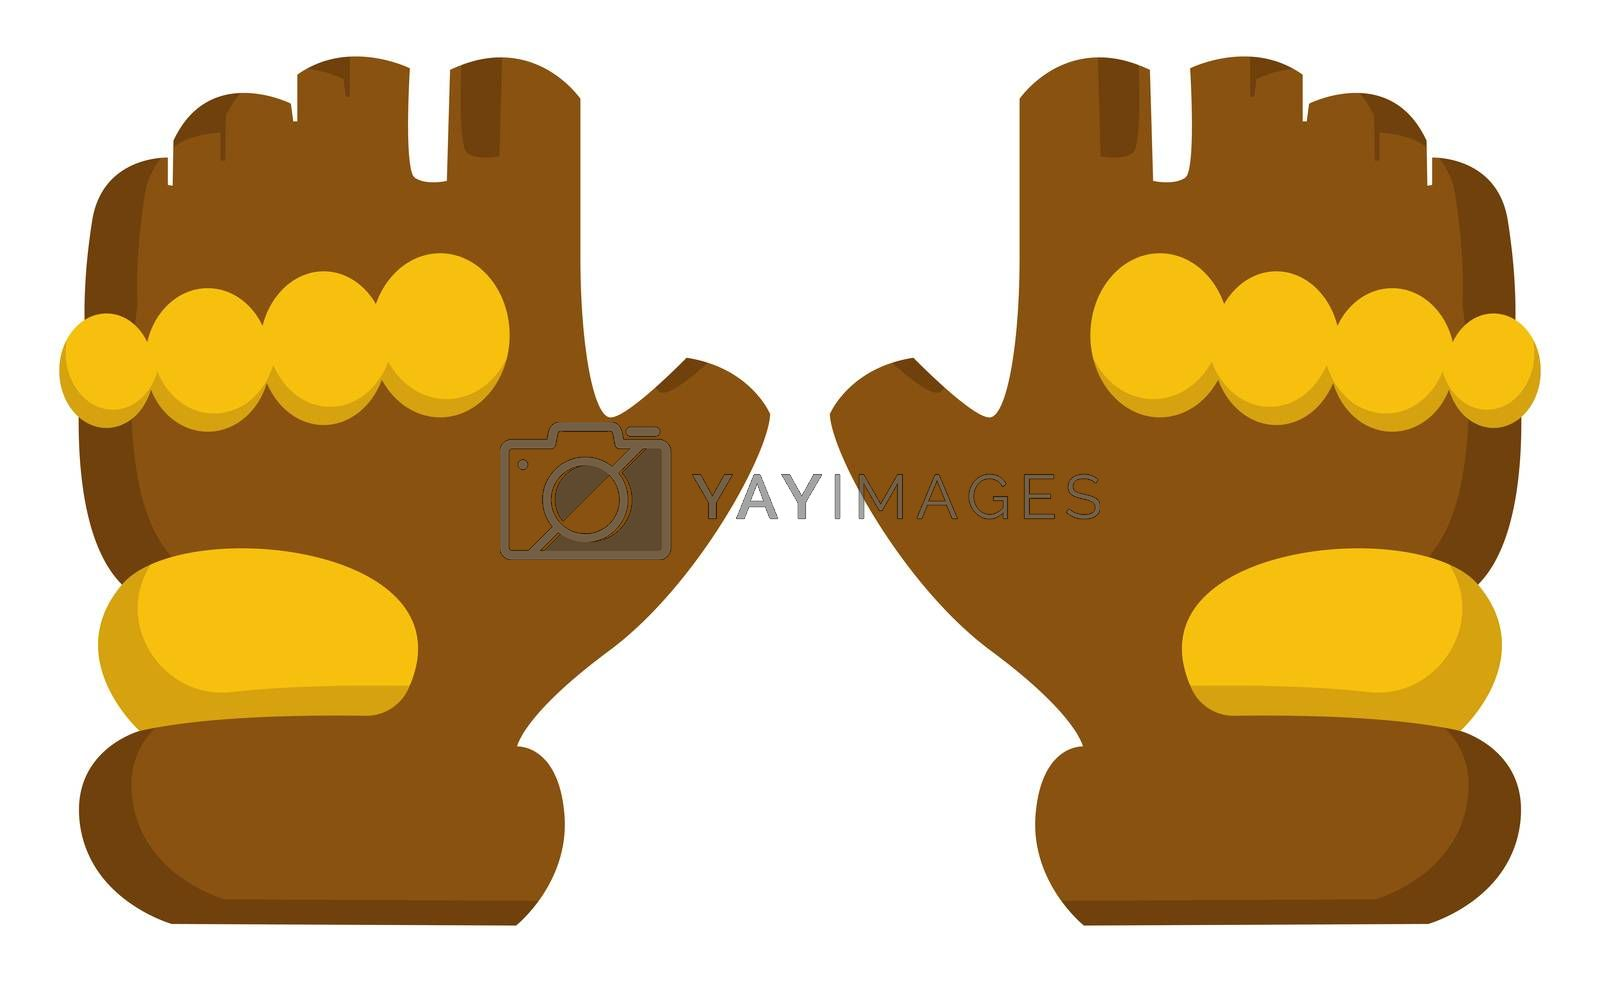 Military gloves, illustration, vector on white background